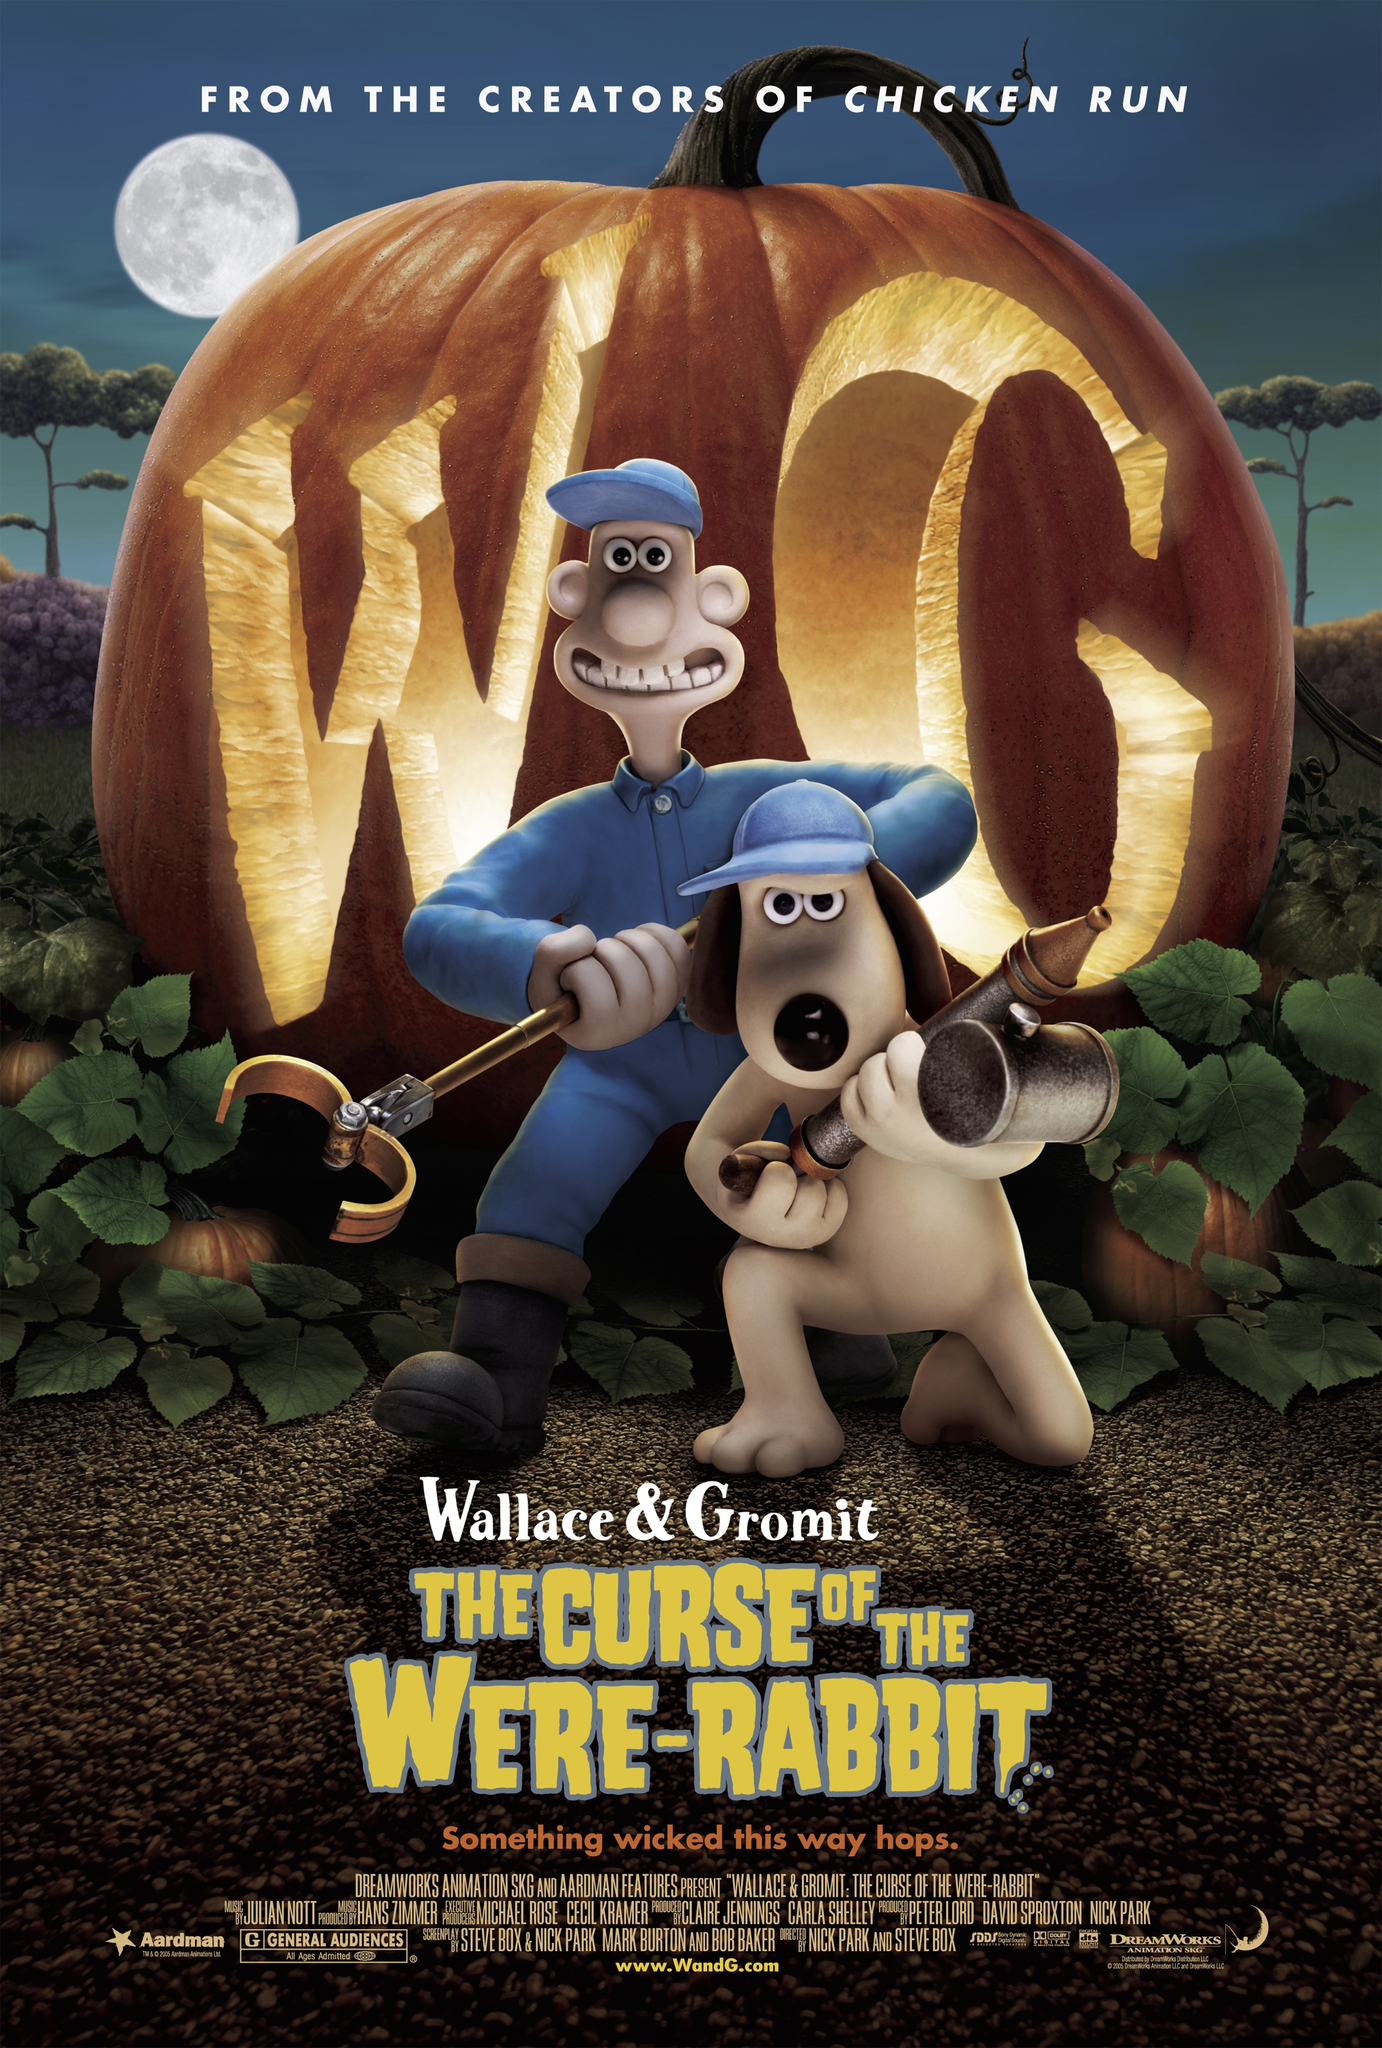 Wallace & Gromit: The Curse of the Were-Rabbit (2005) - IMDb